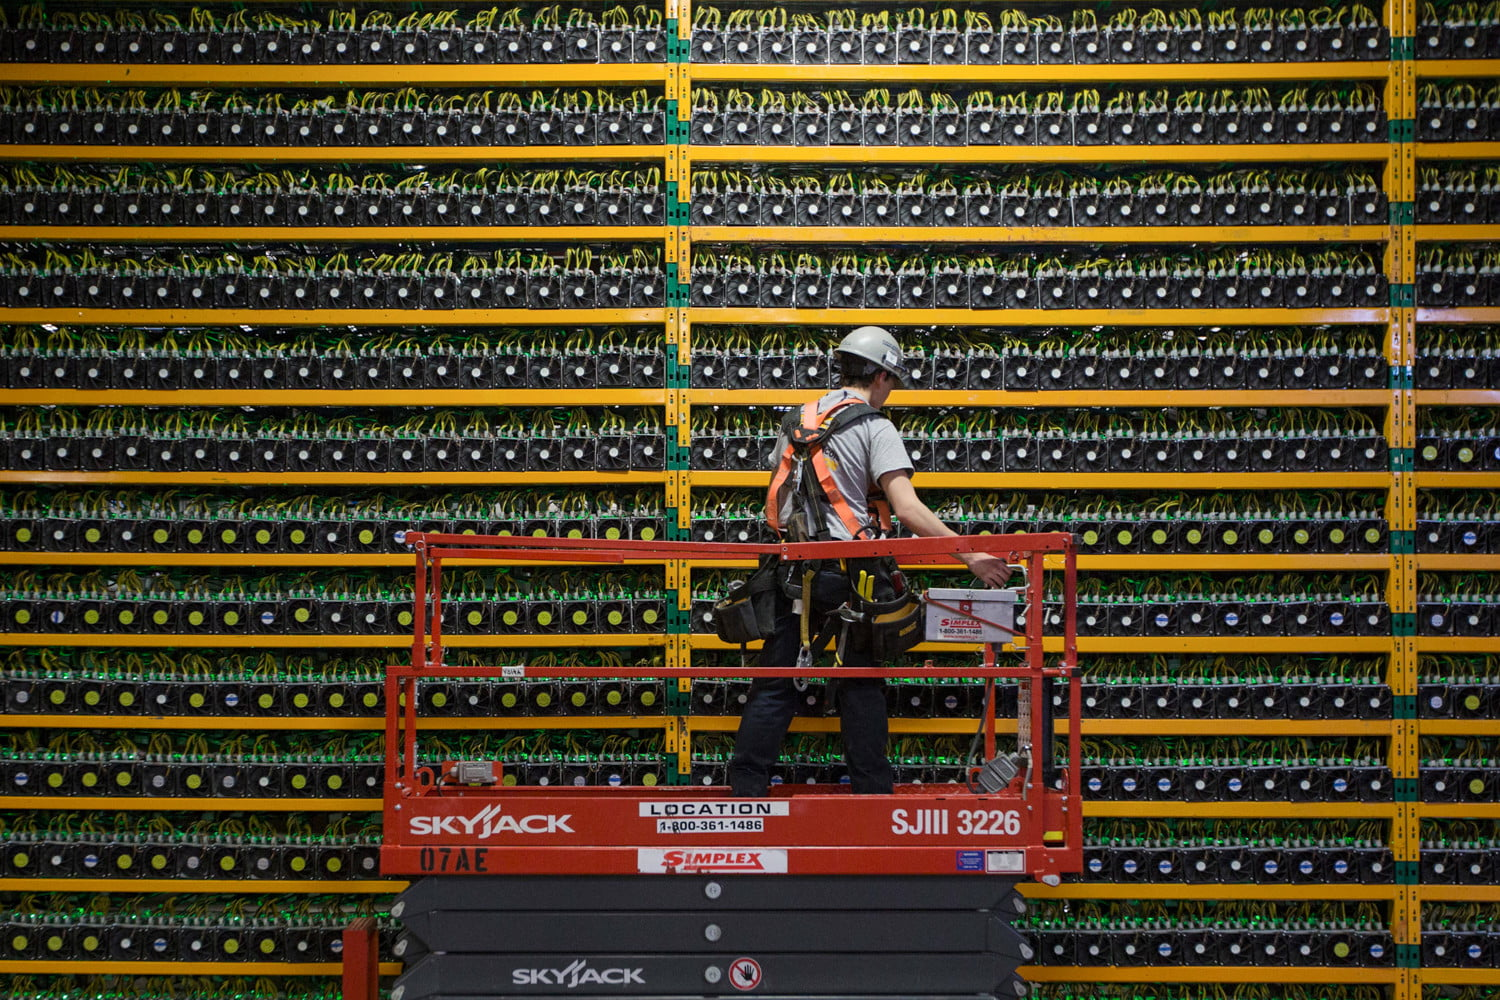 Approximate mining could increase bitcoin mining profits